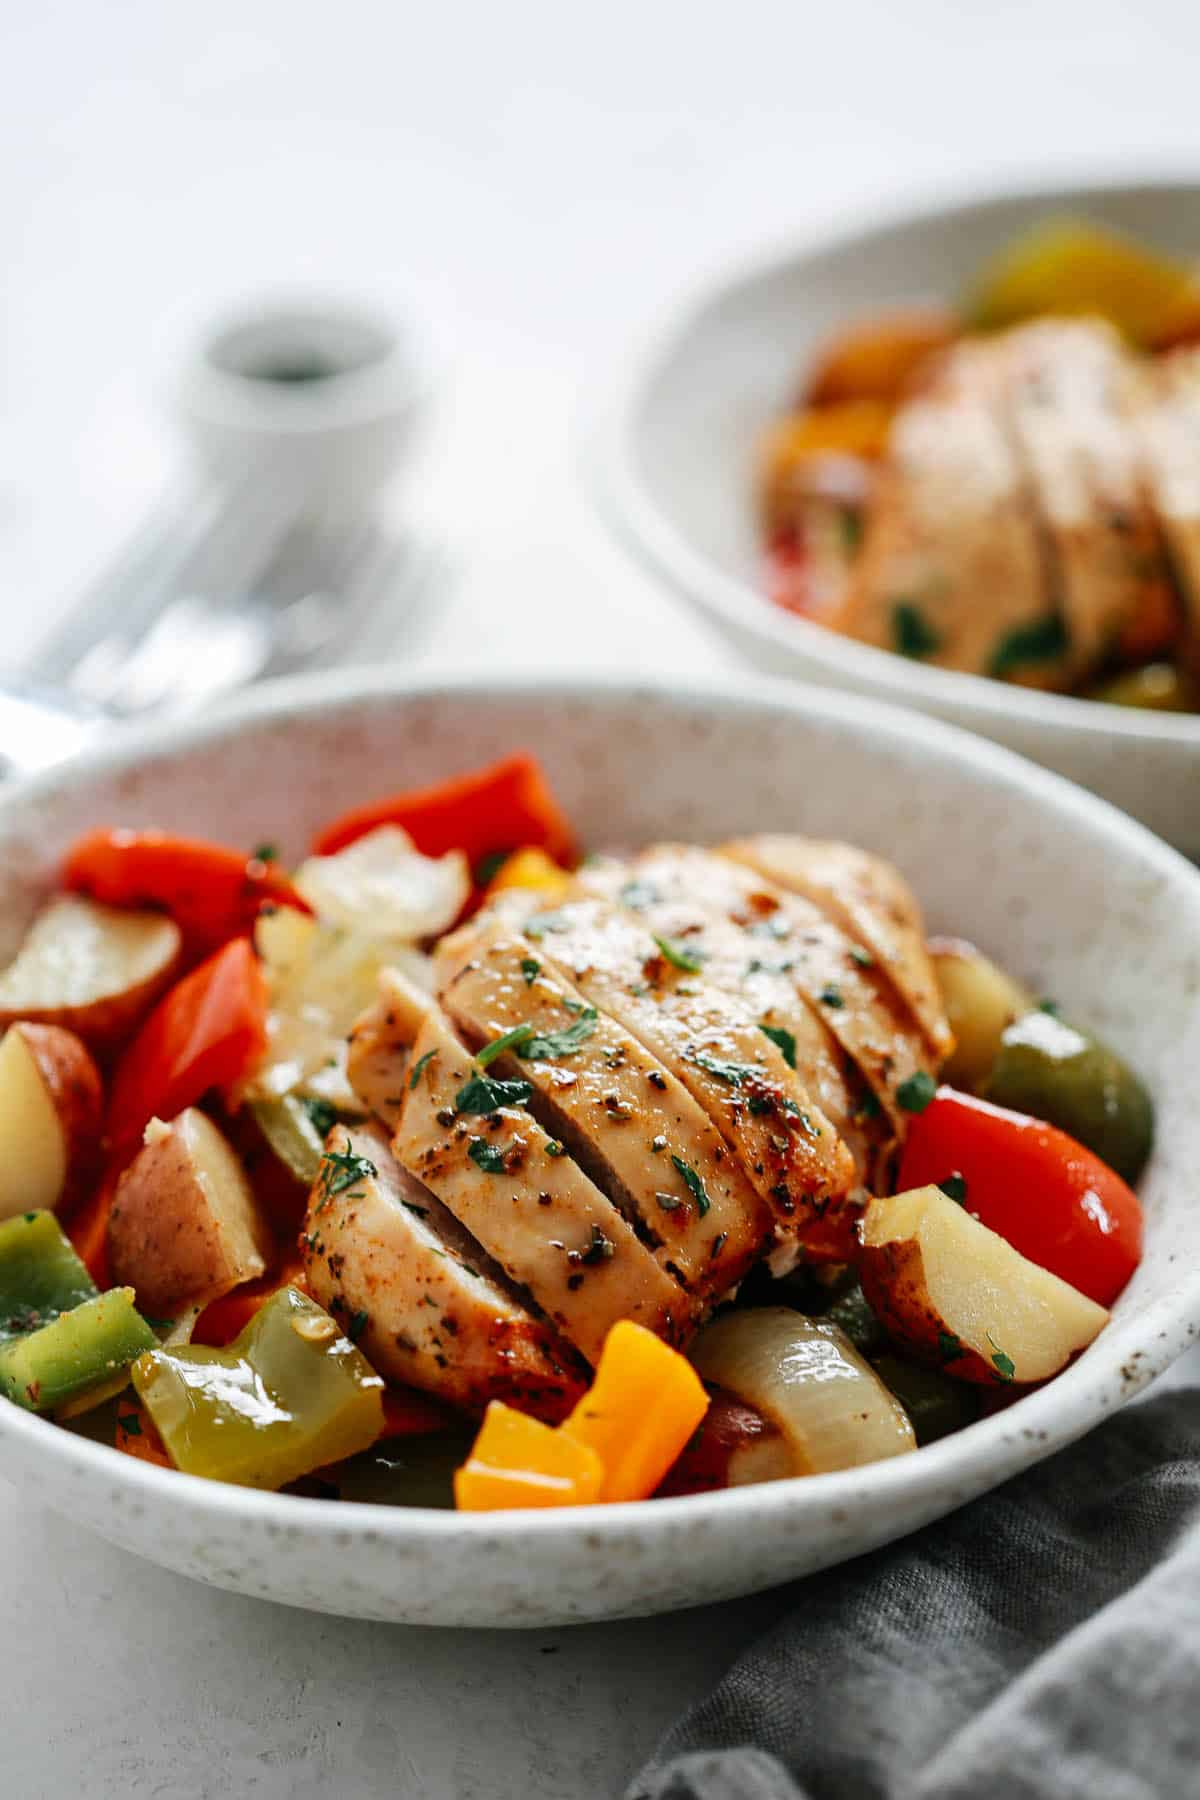 serving of baked chicken breast (sliced) with roasted vegetables